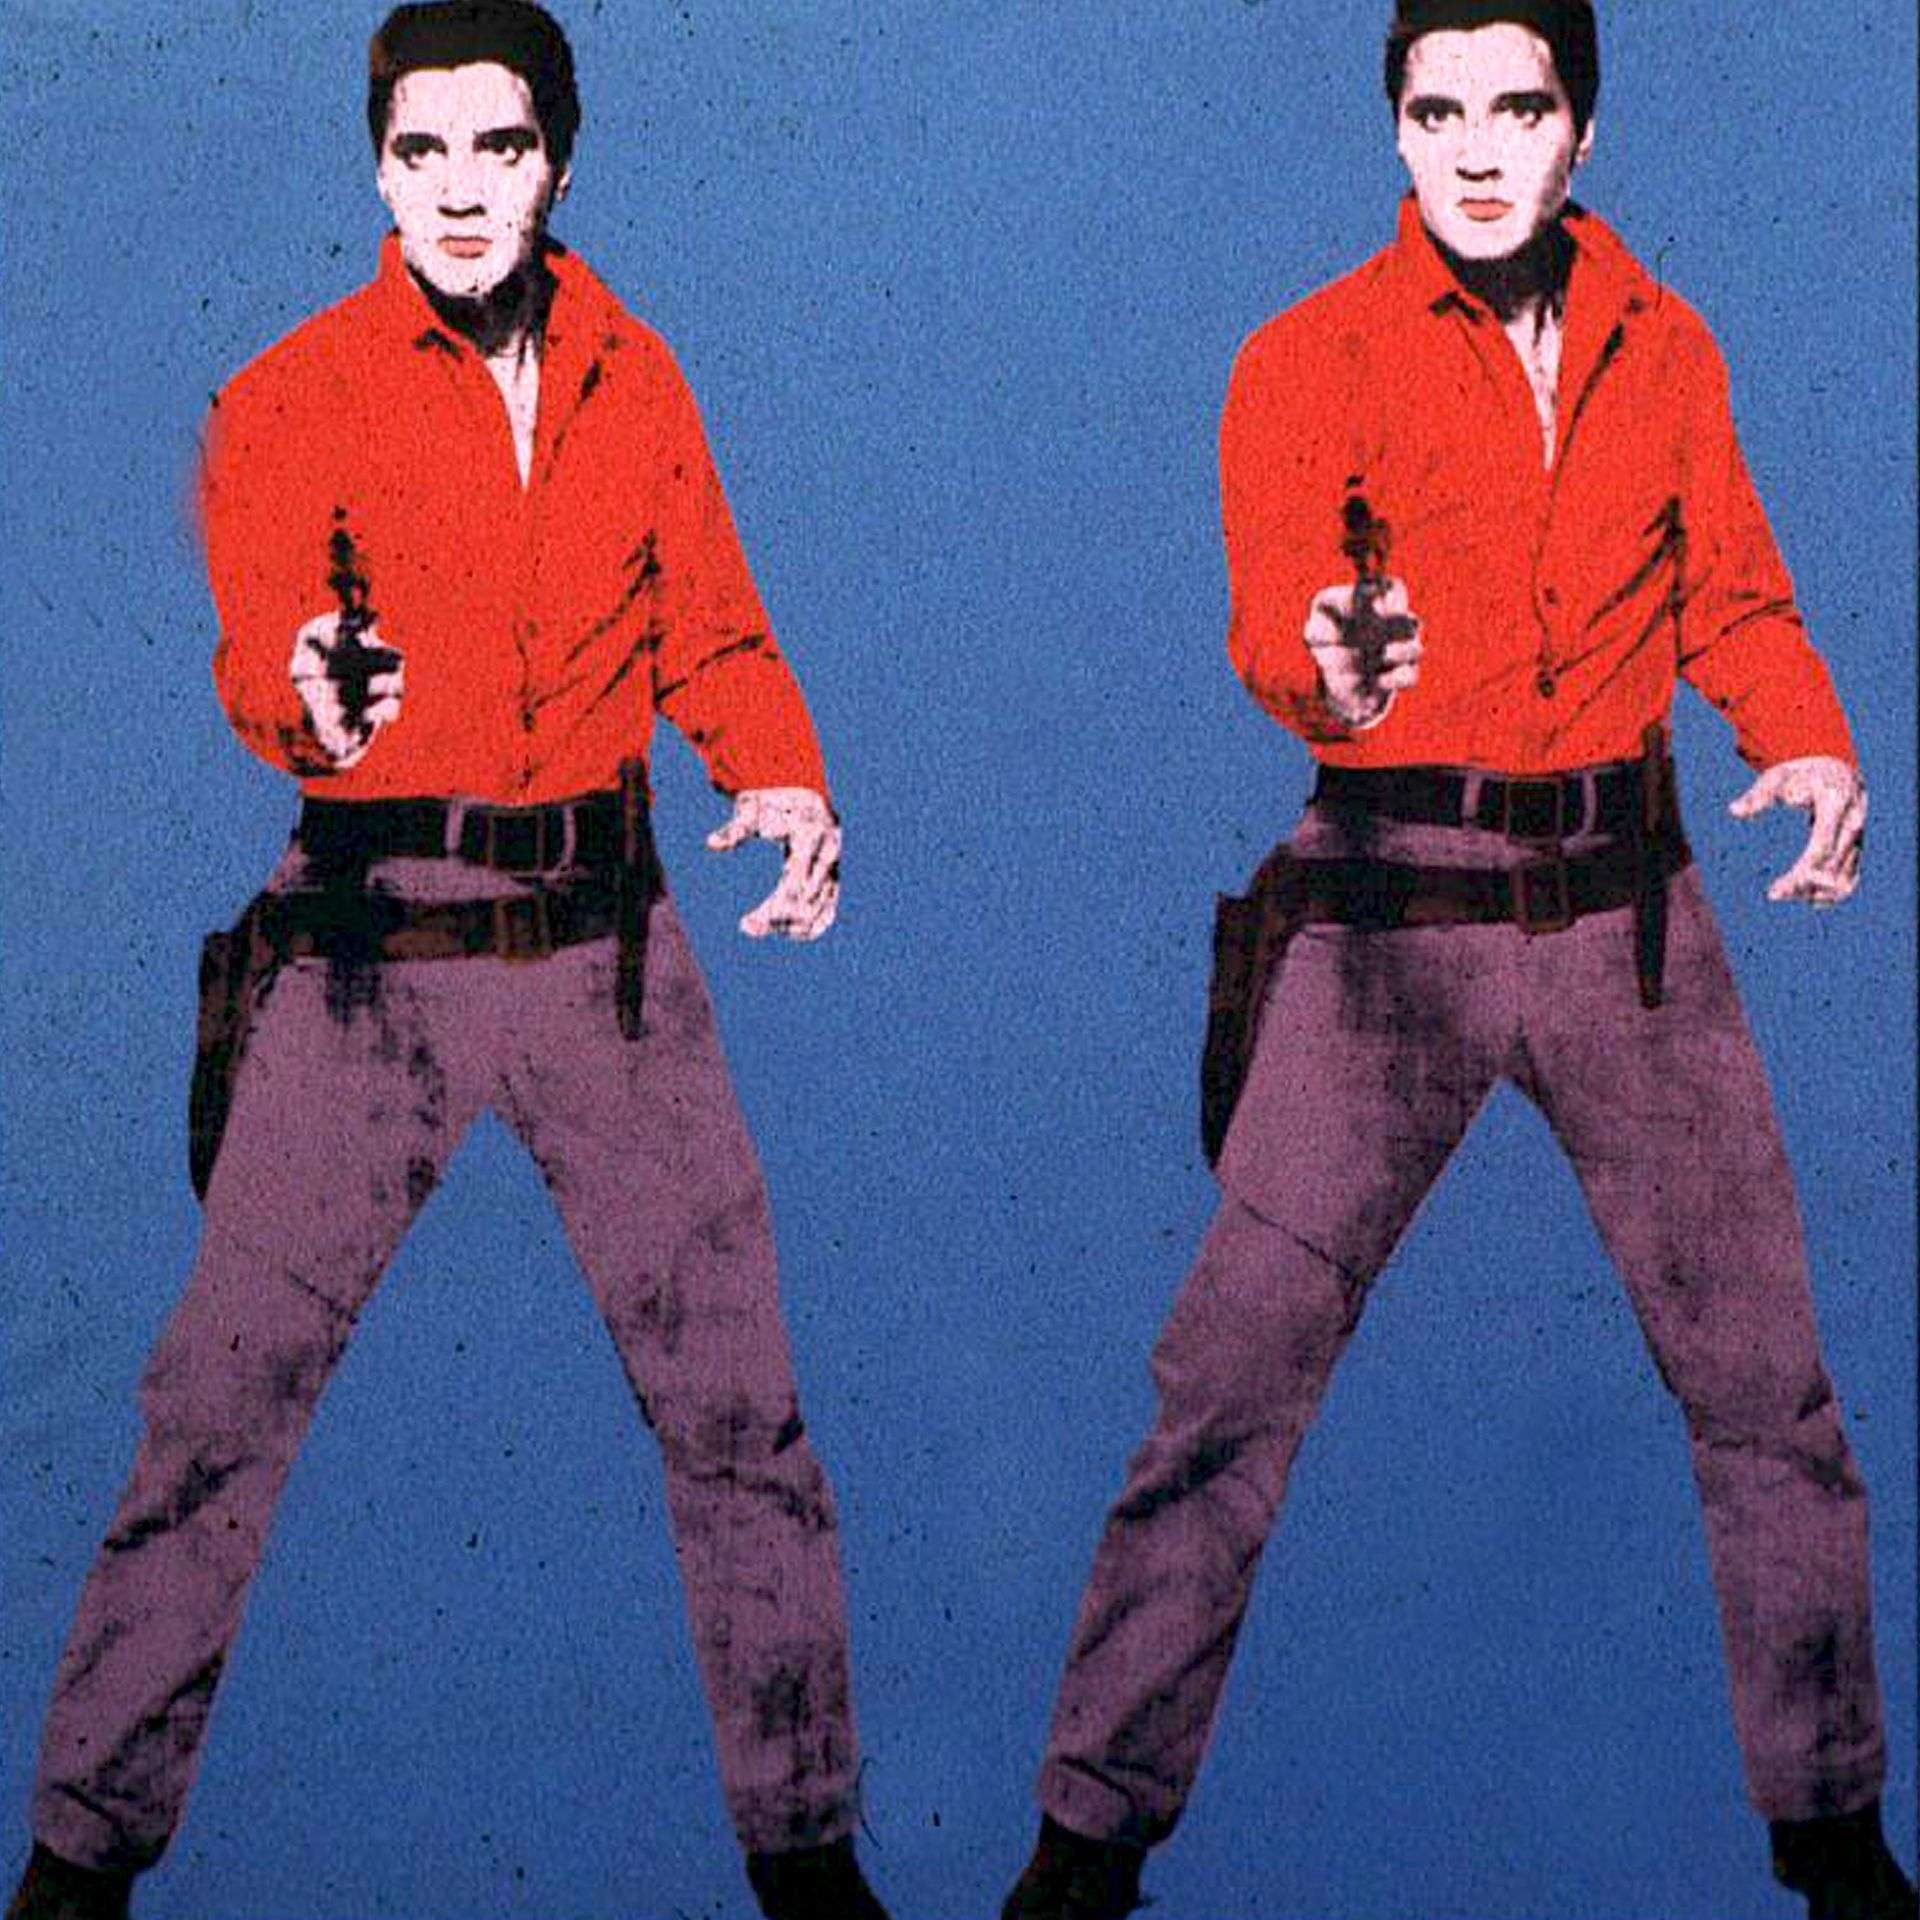 Cool and Cold Ludwig Elvis Presley Andy Warhol color